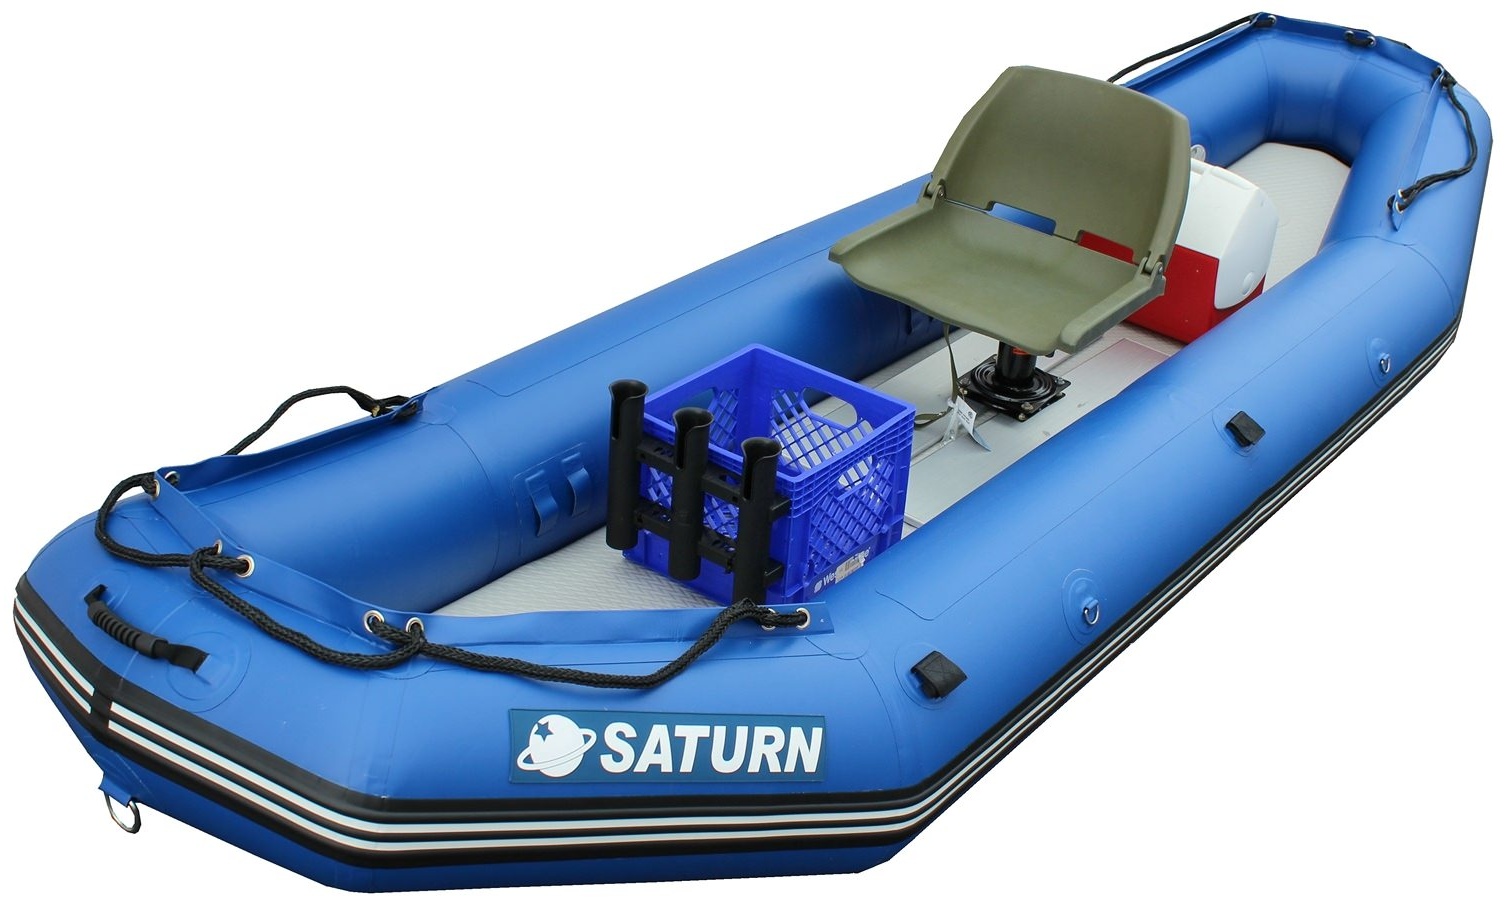 12' Saturn Raft/Kayak